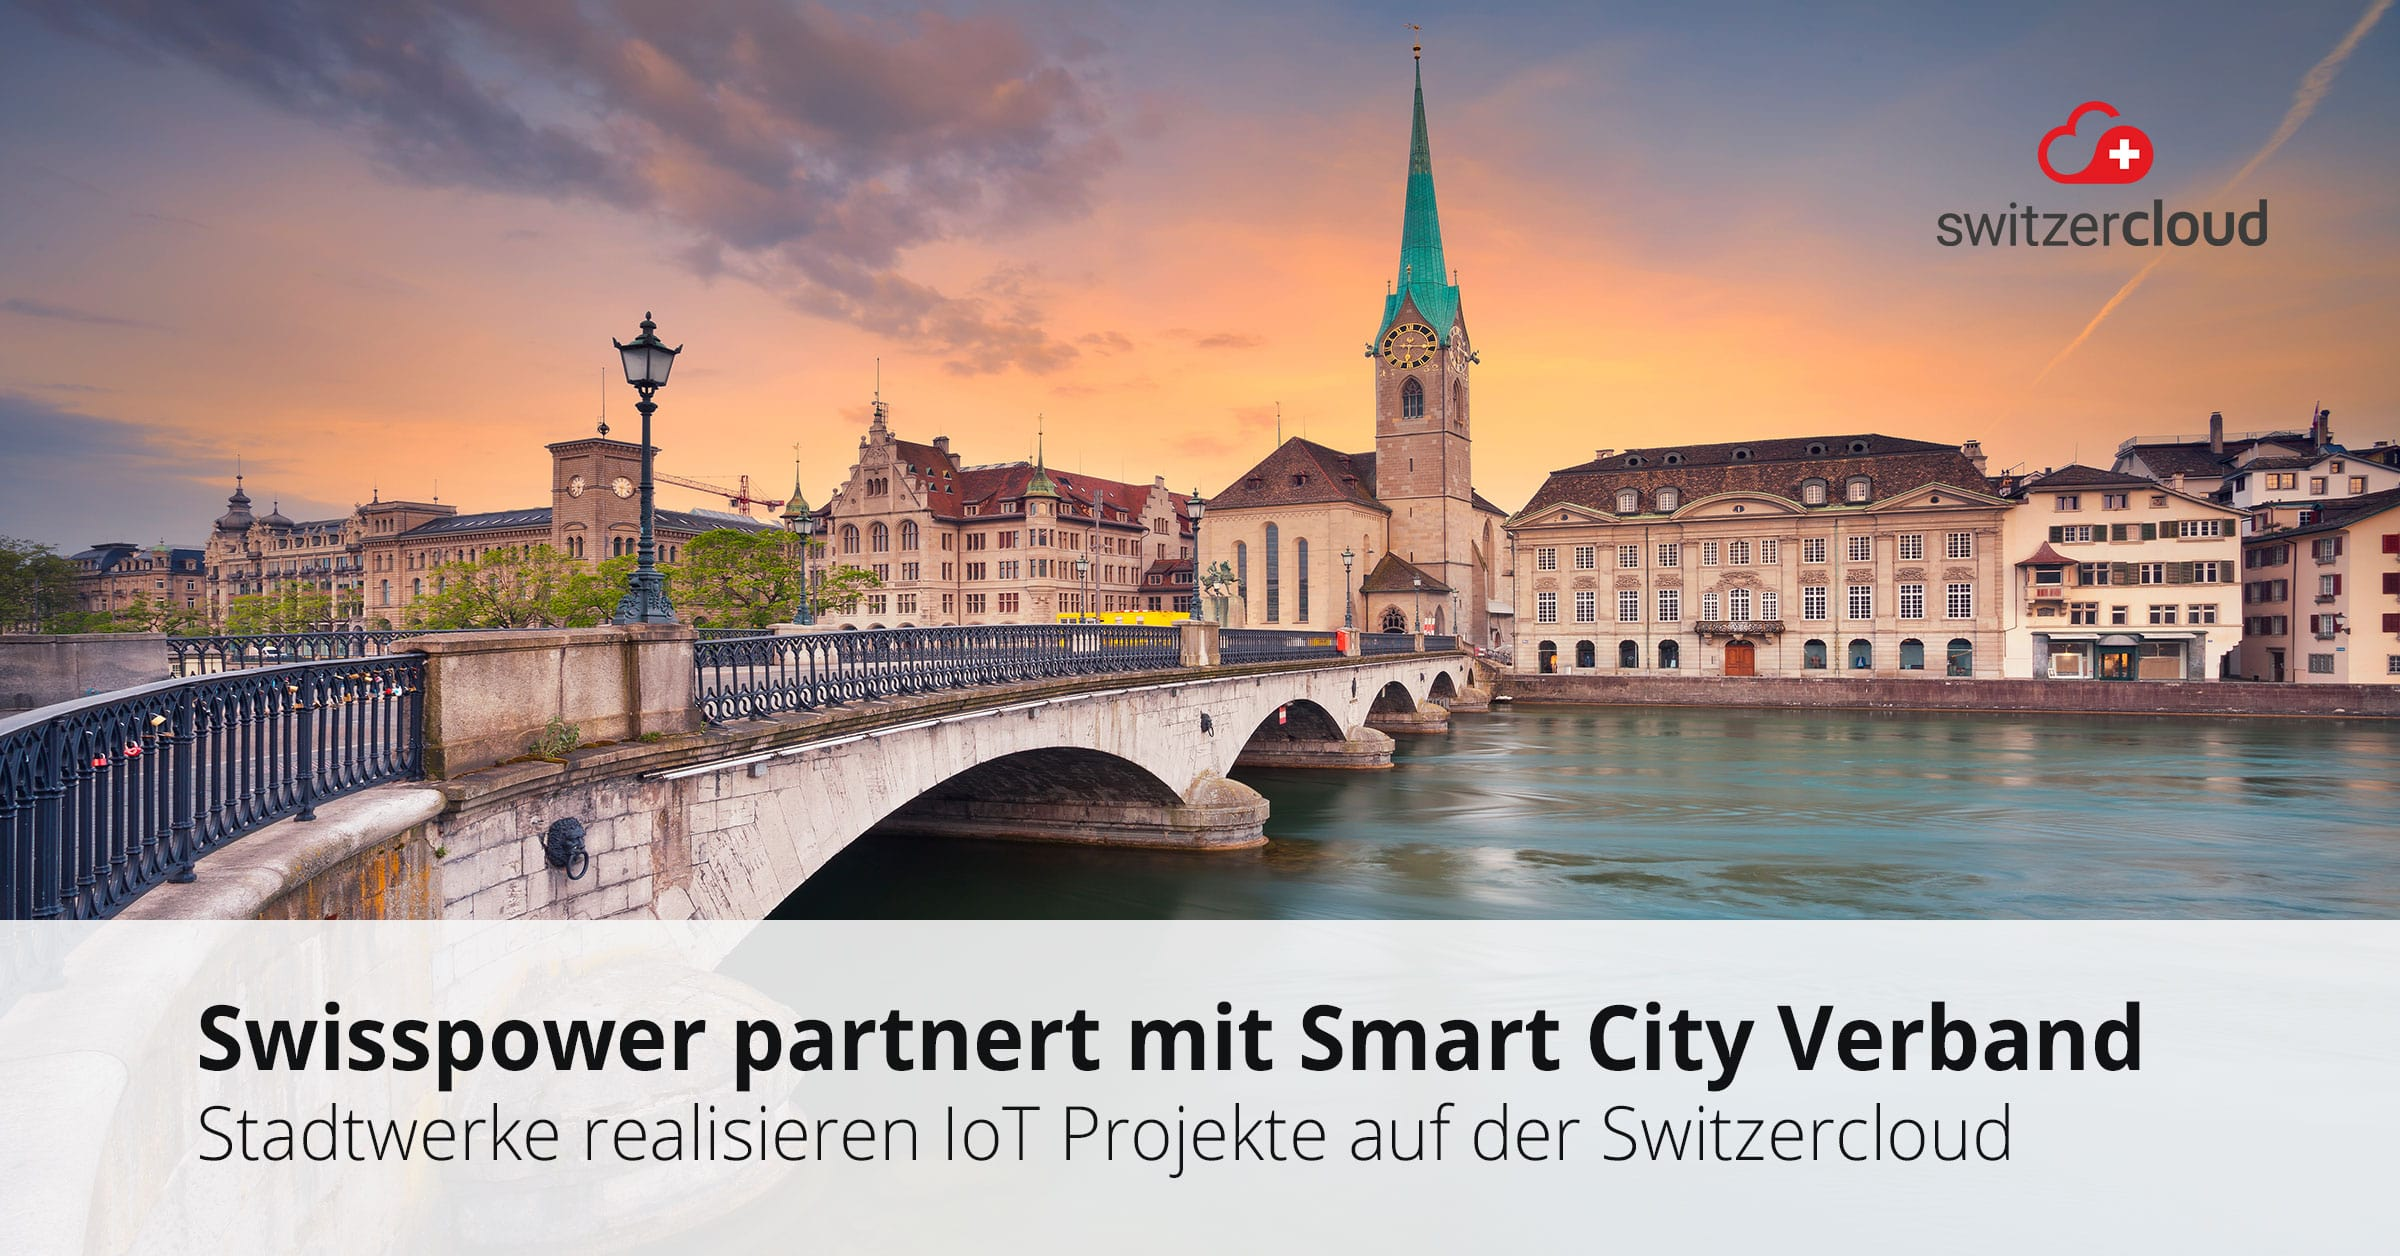 Unser Partner Swisspower